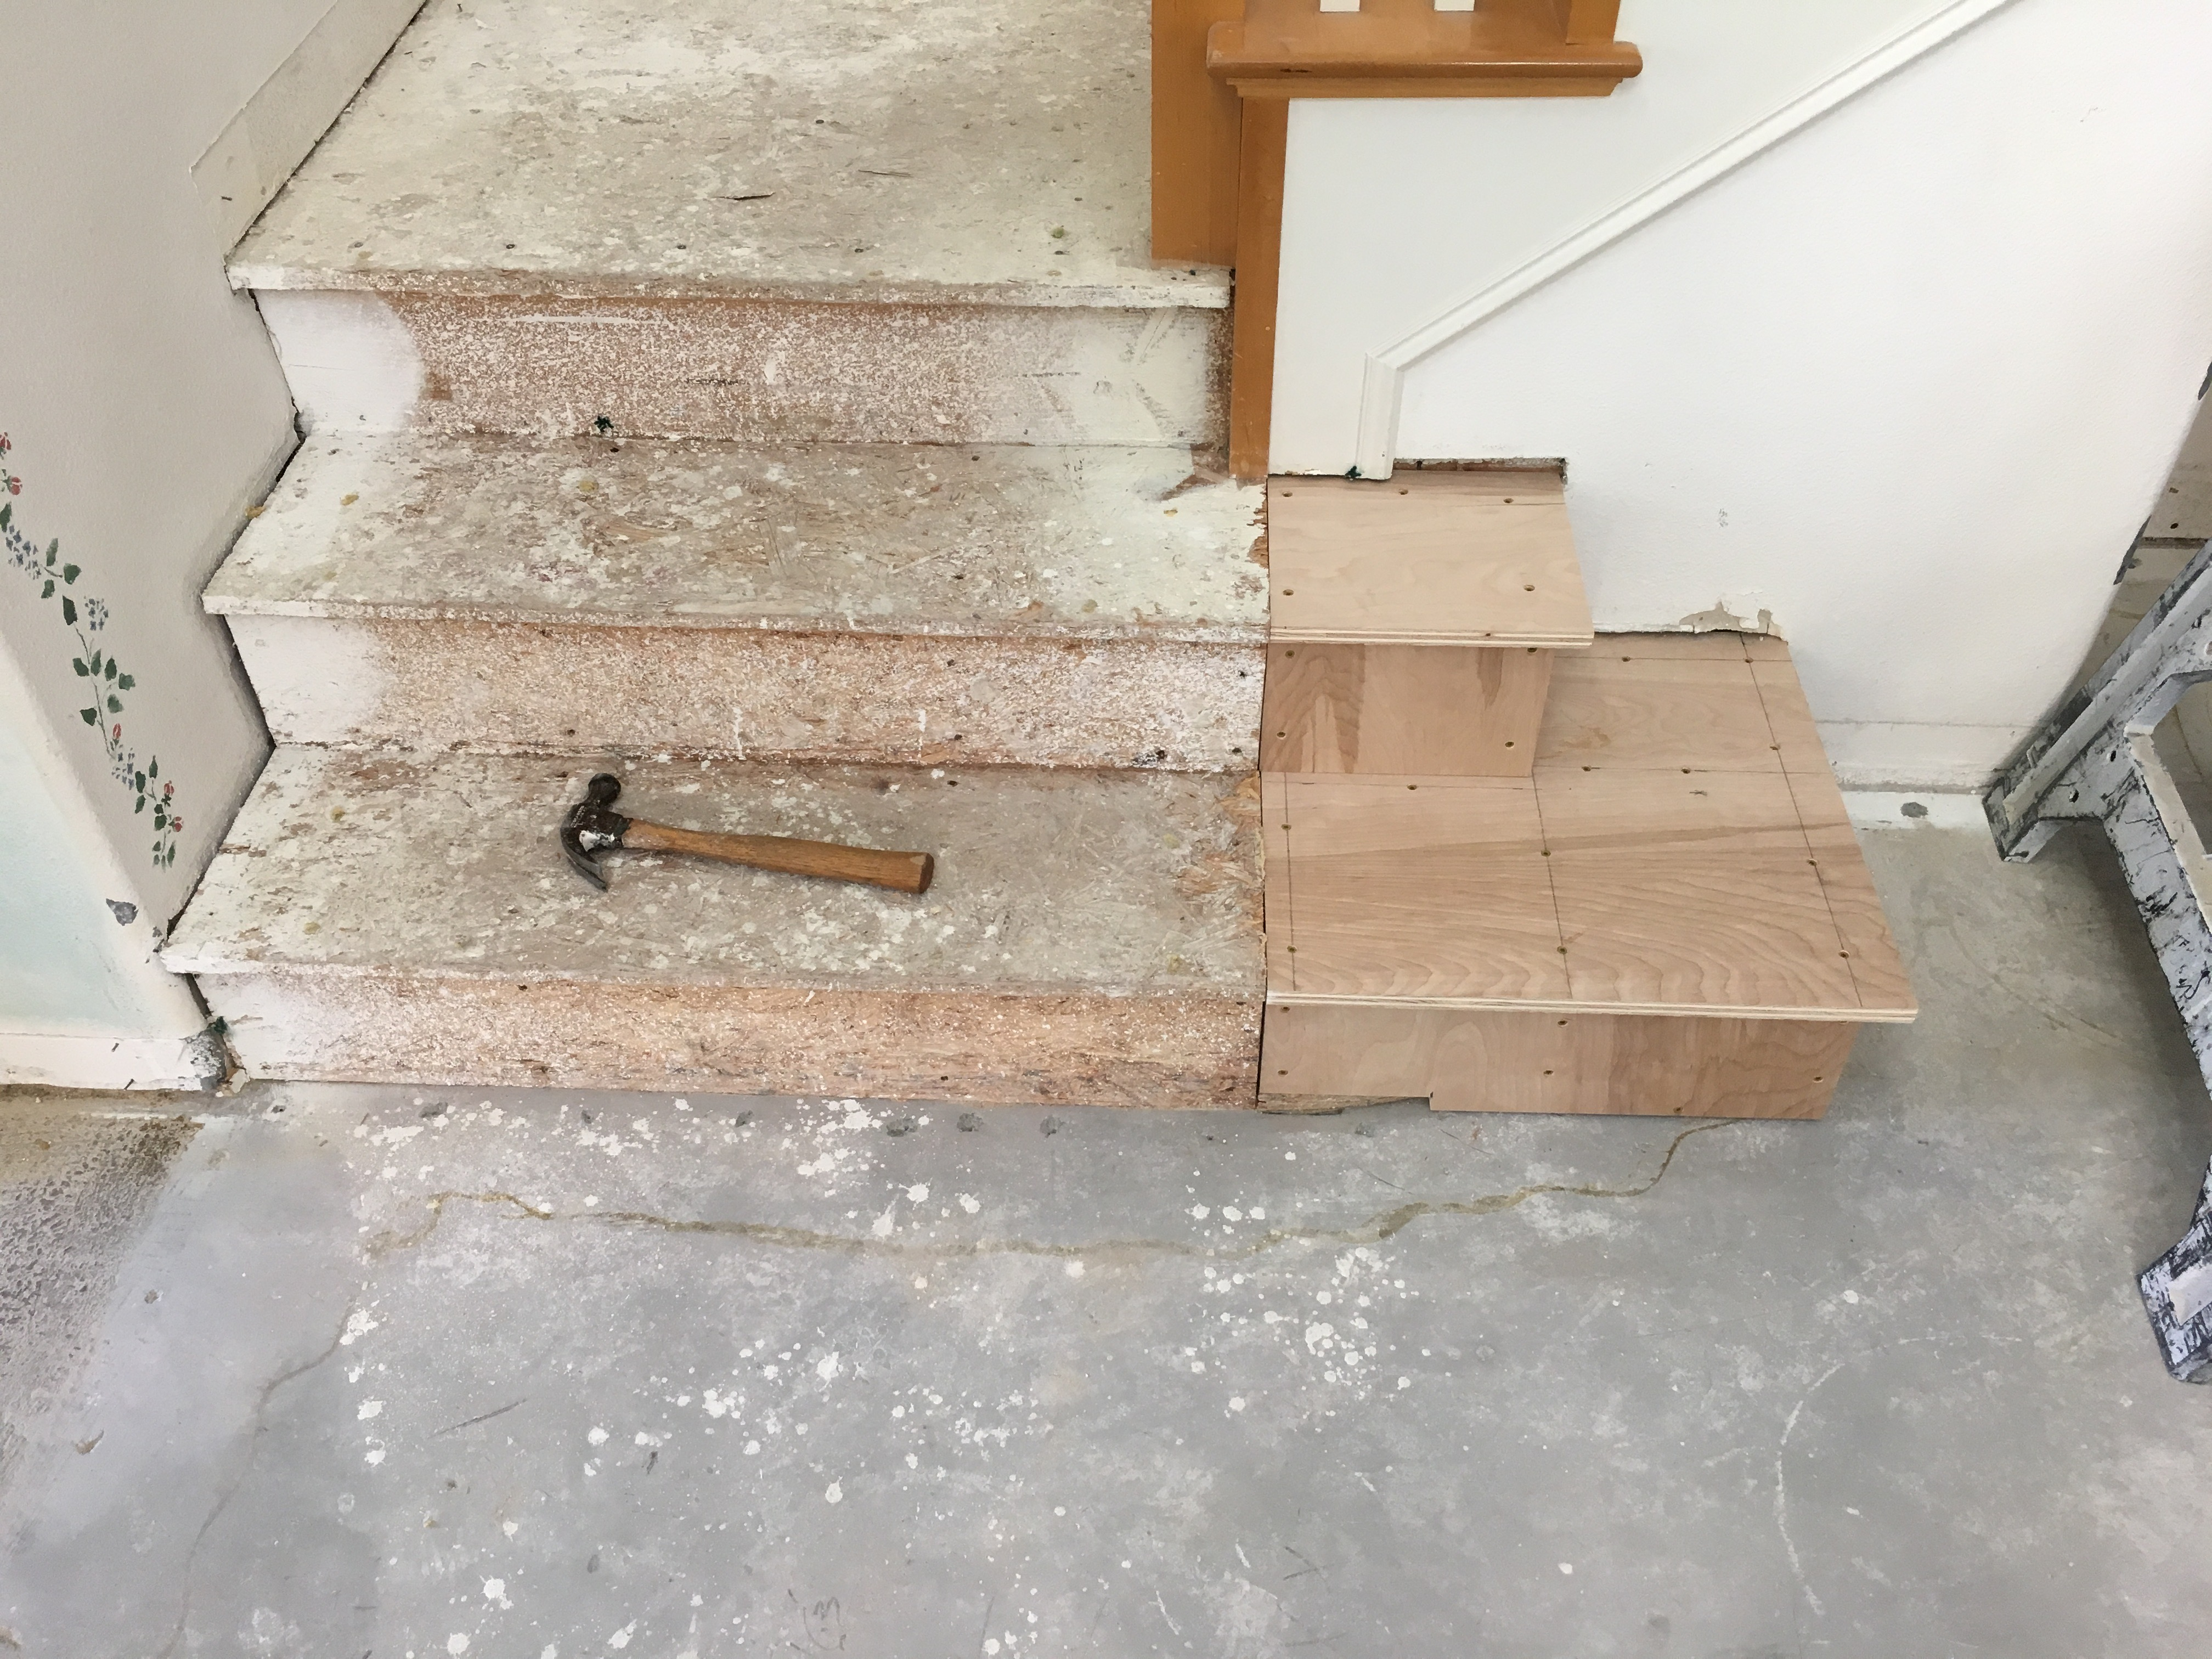 Picture of Demo and Construction of One Side of the Staircase